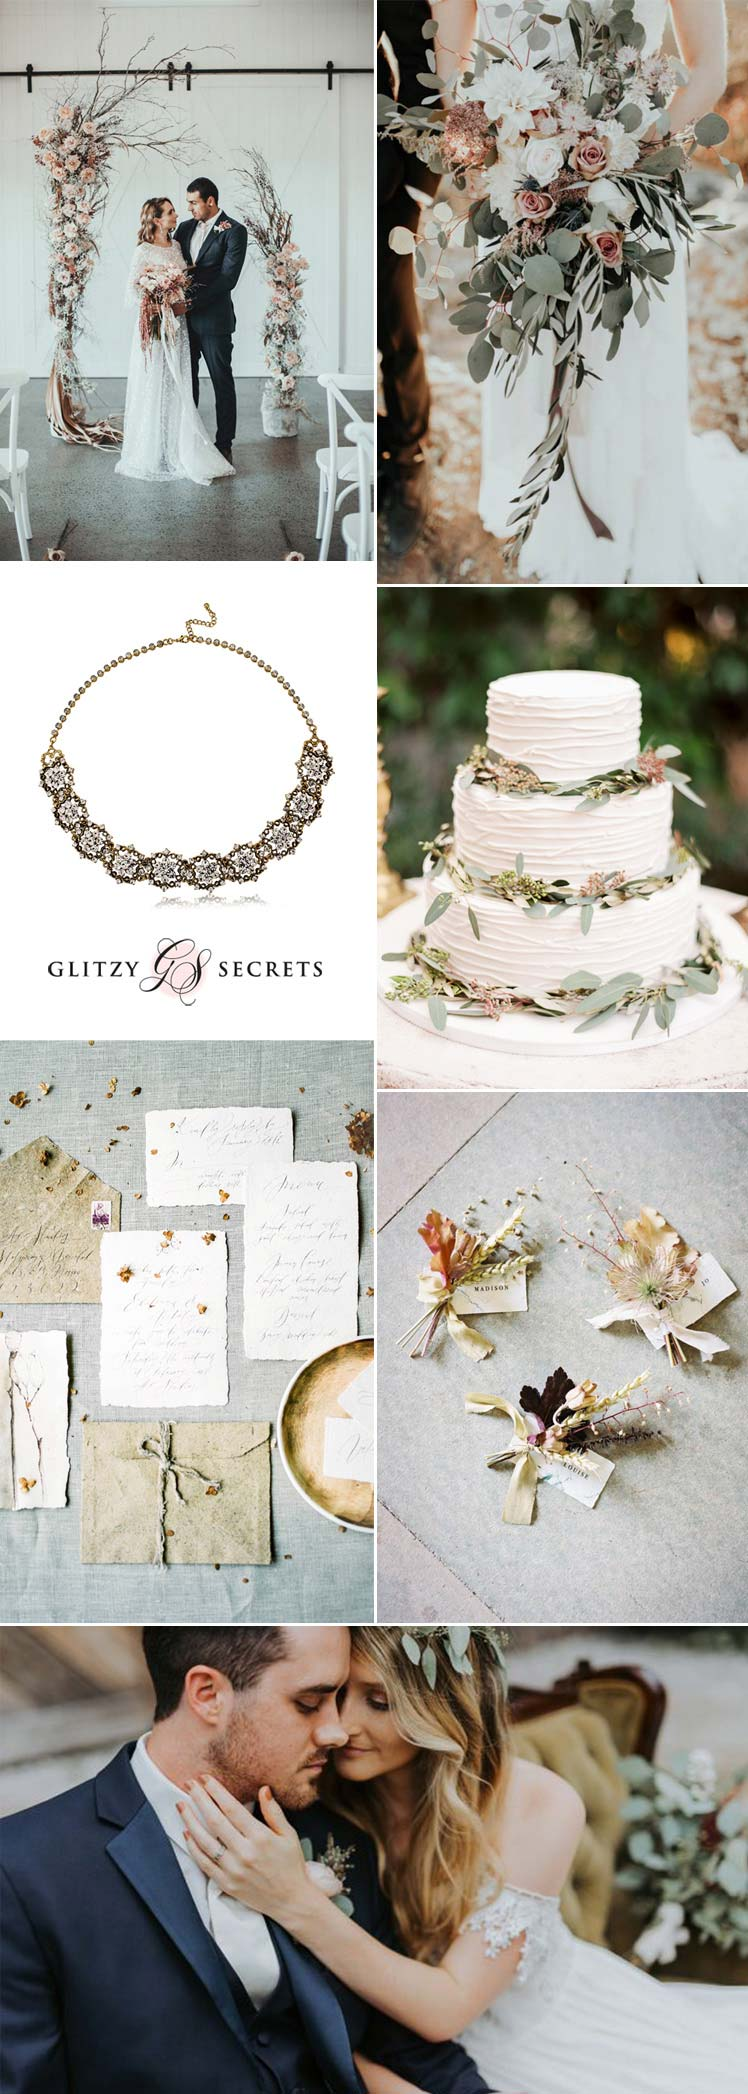 stylish sage and beige wedding ideas